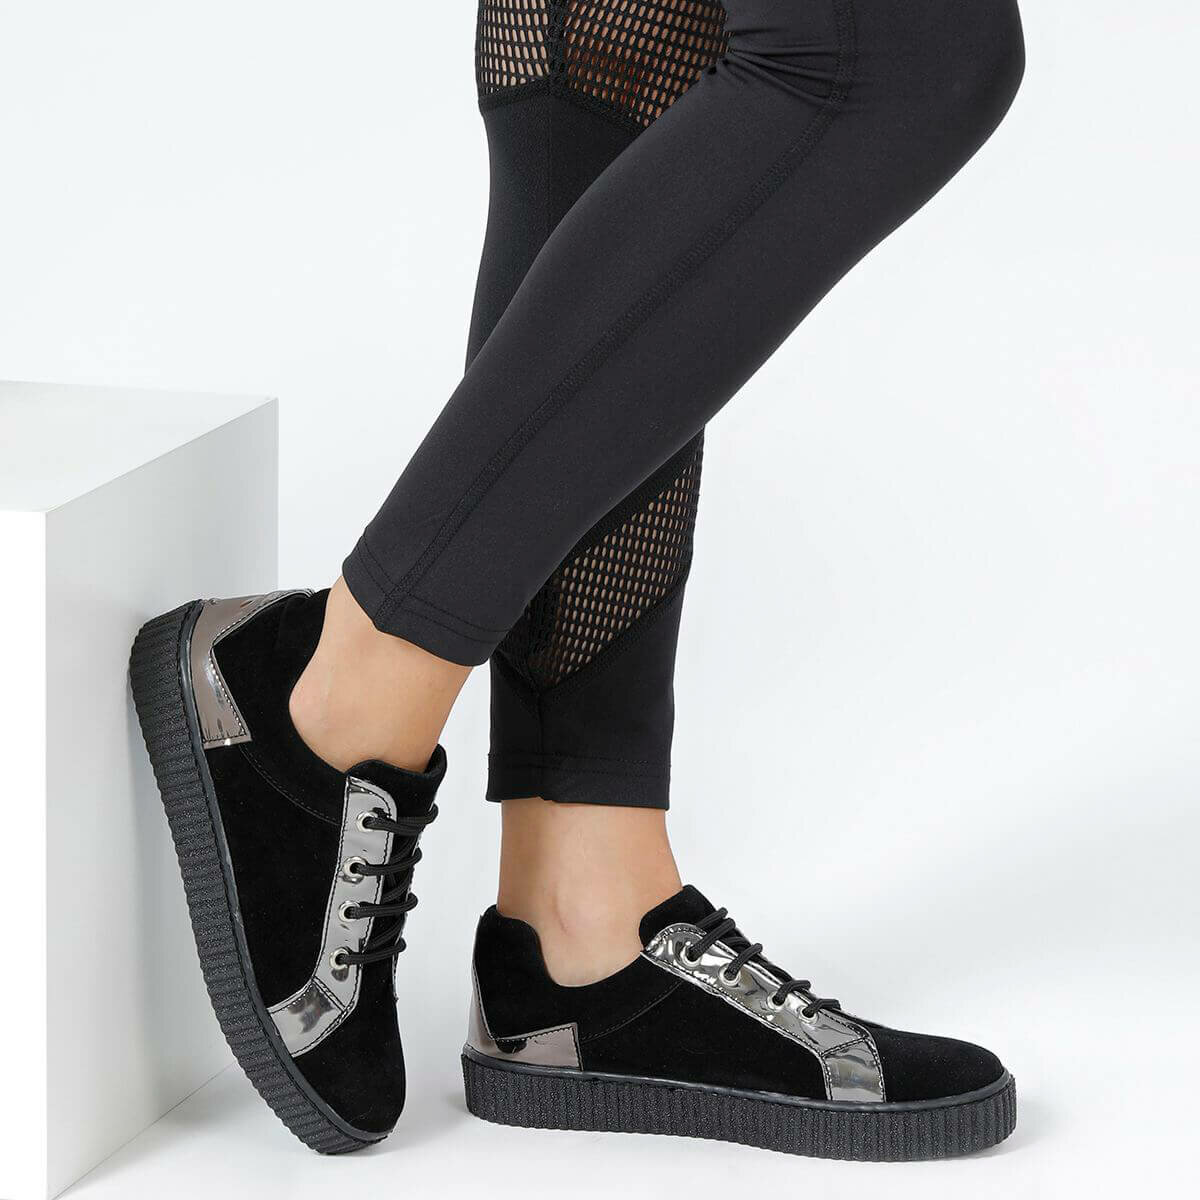 FLO SARAH87Z Black Women 'S Sneaker Shoes BUTIGO